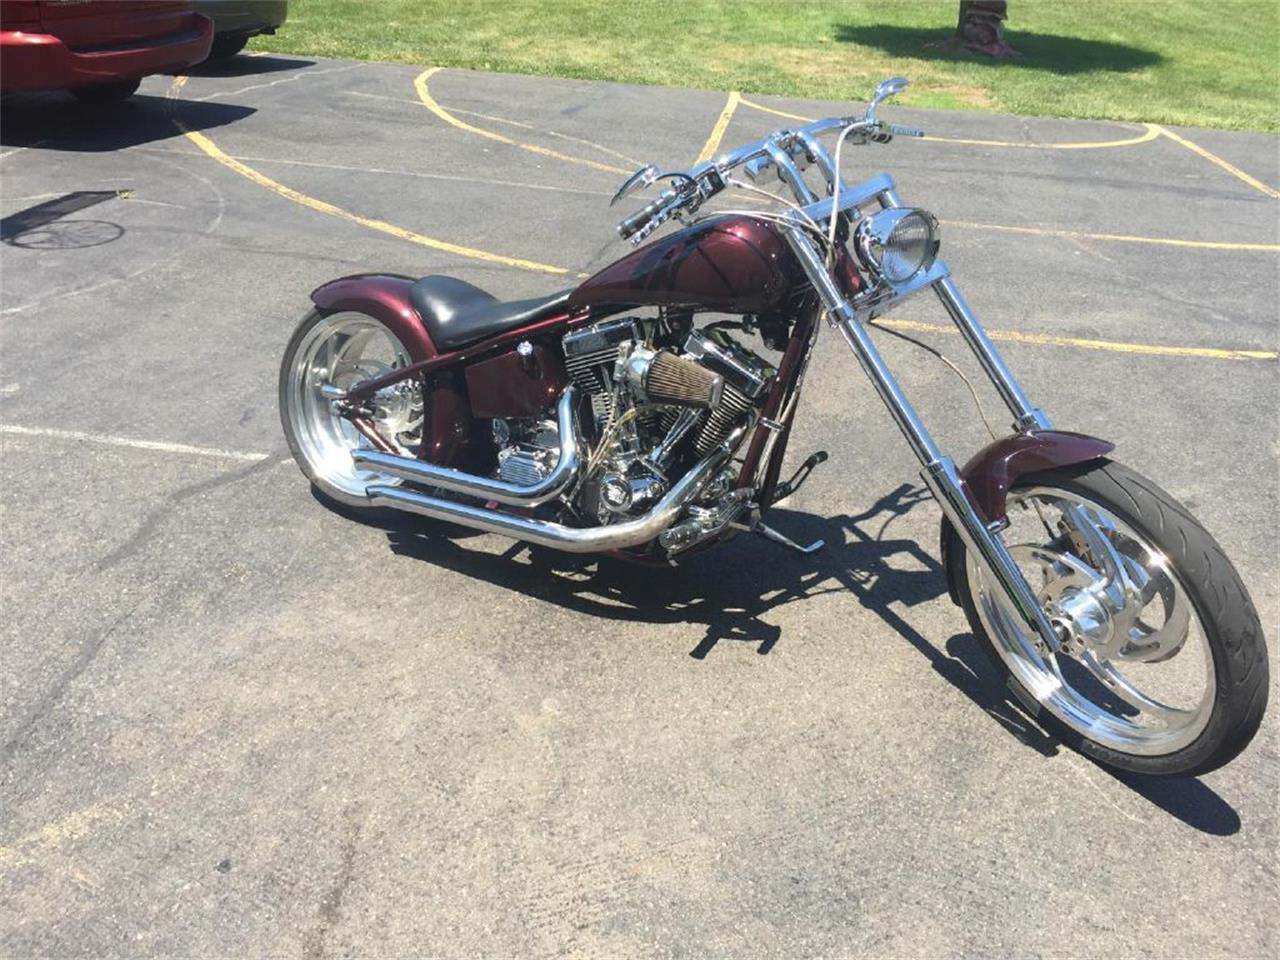 2007 Harley-Davidson Motorcycle (CC-1182211) for sale in West Pittston, Pennsylvania